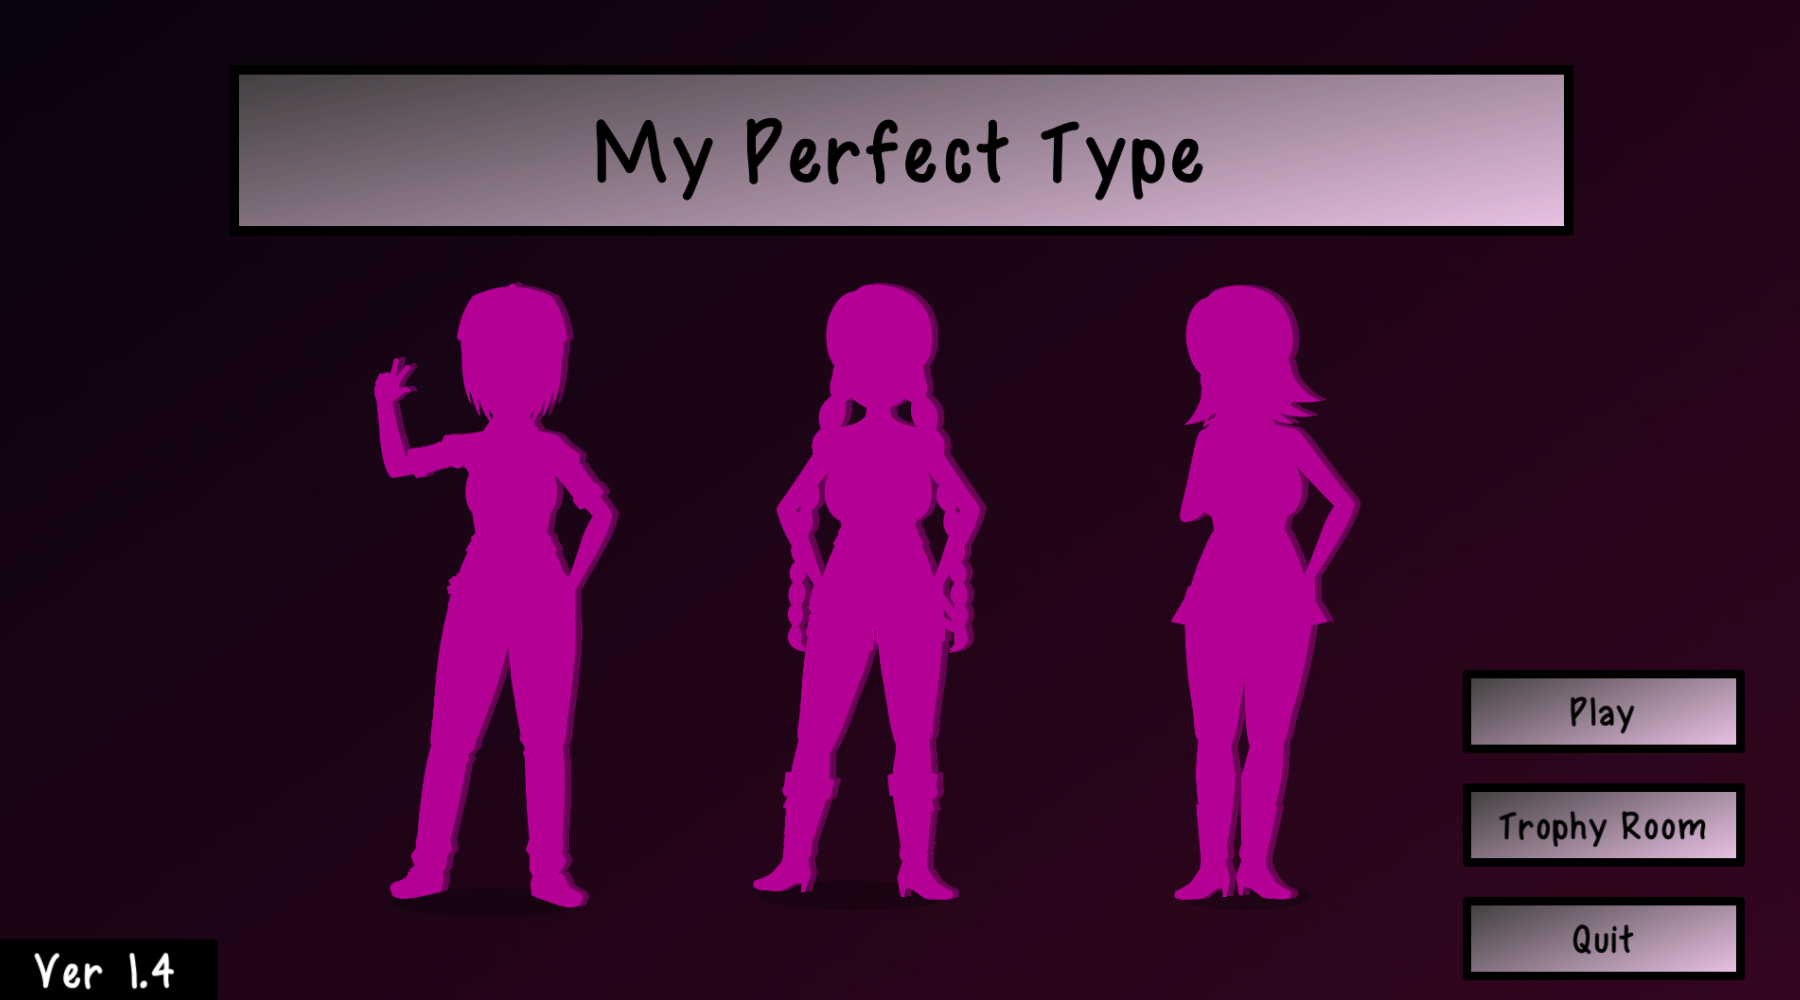 My Perfect Type: v1.4